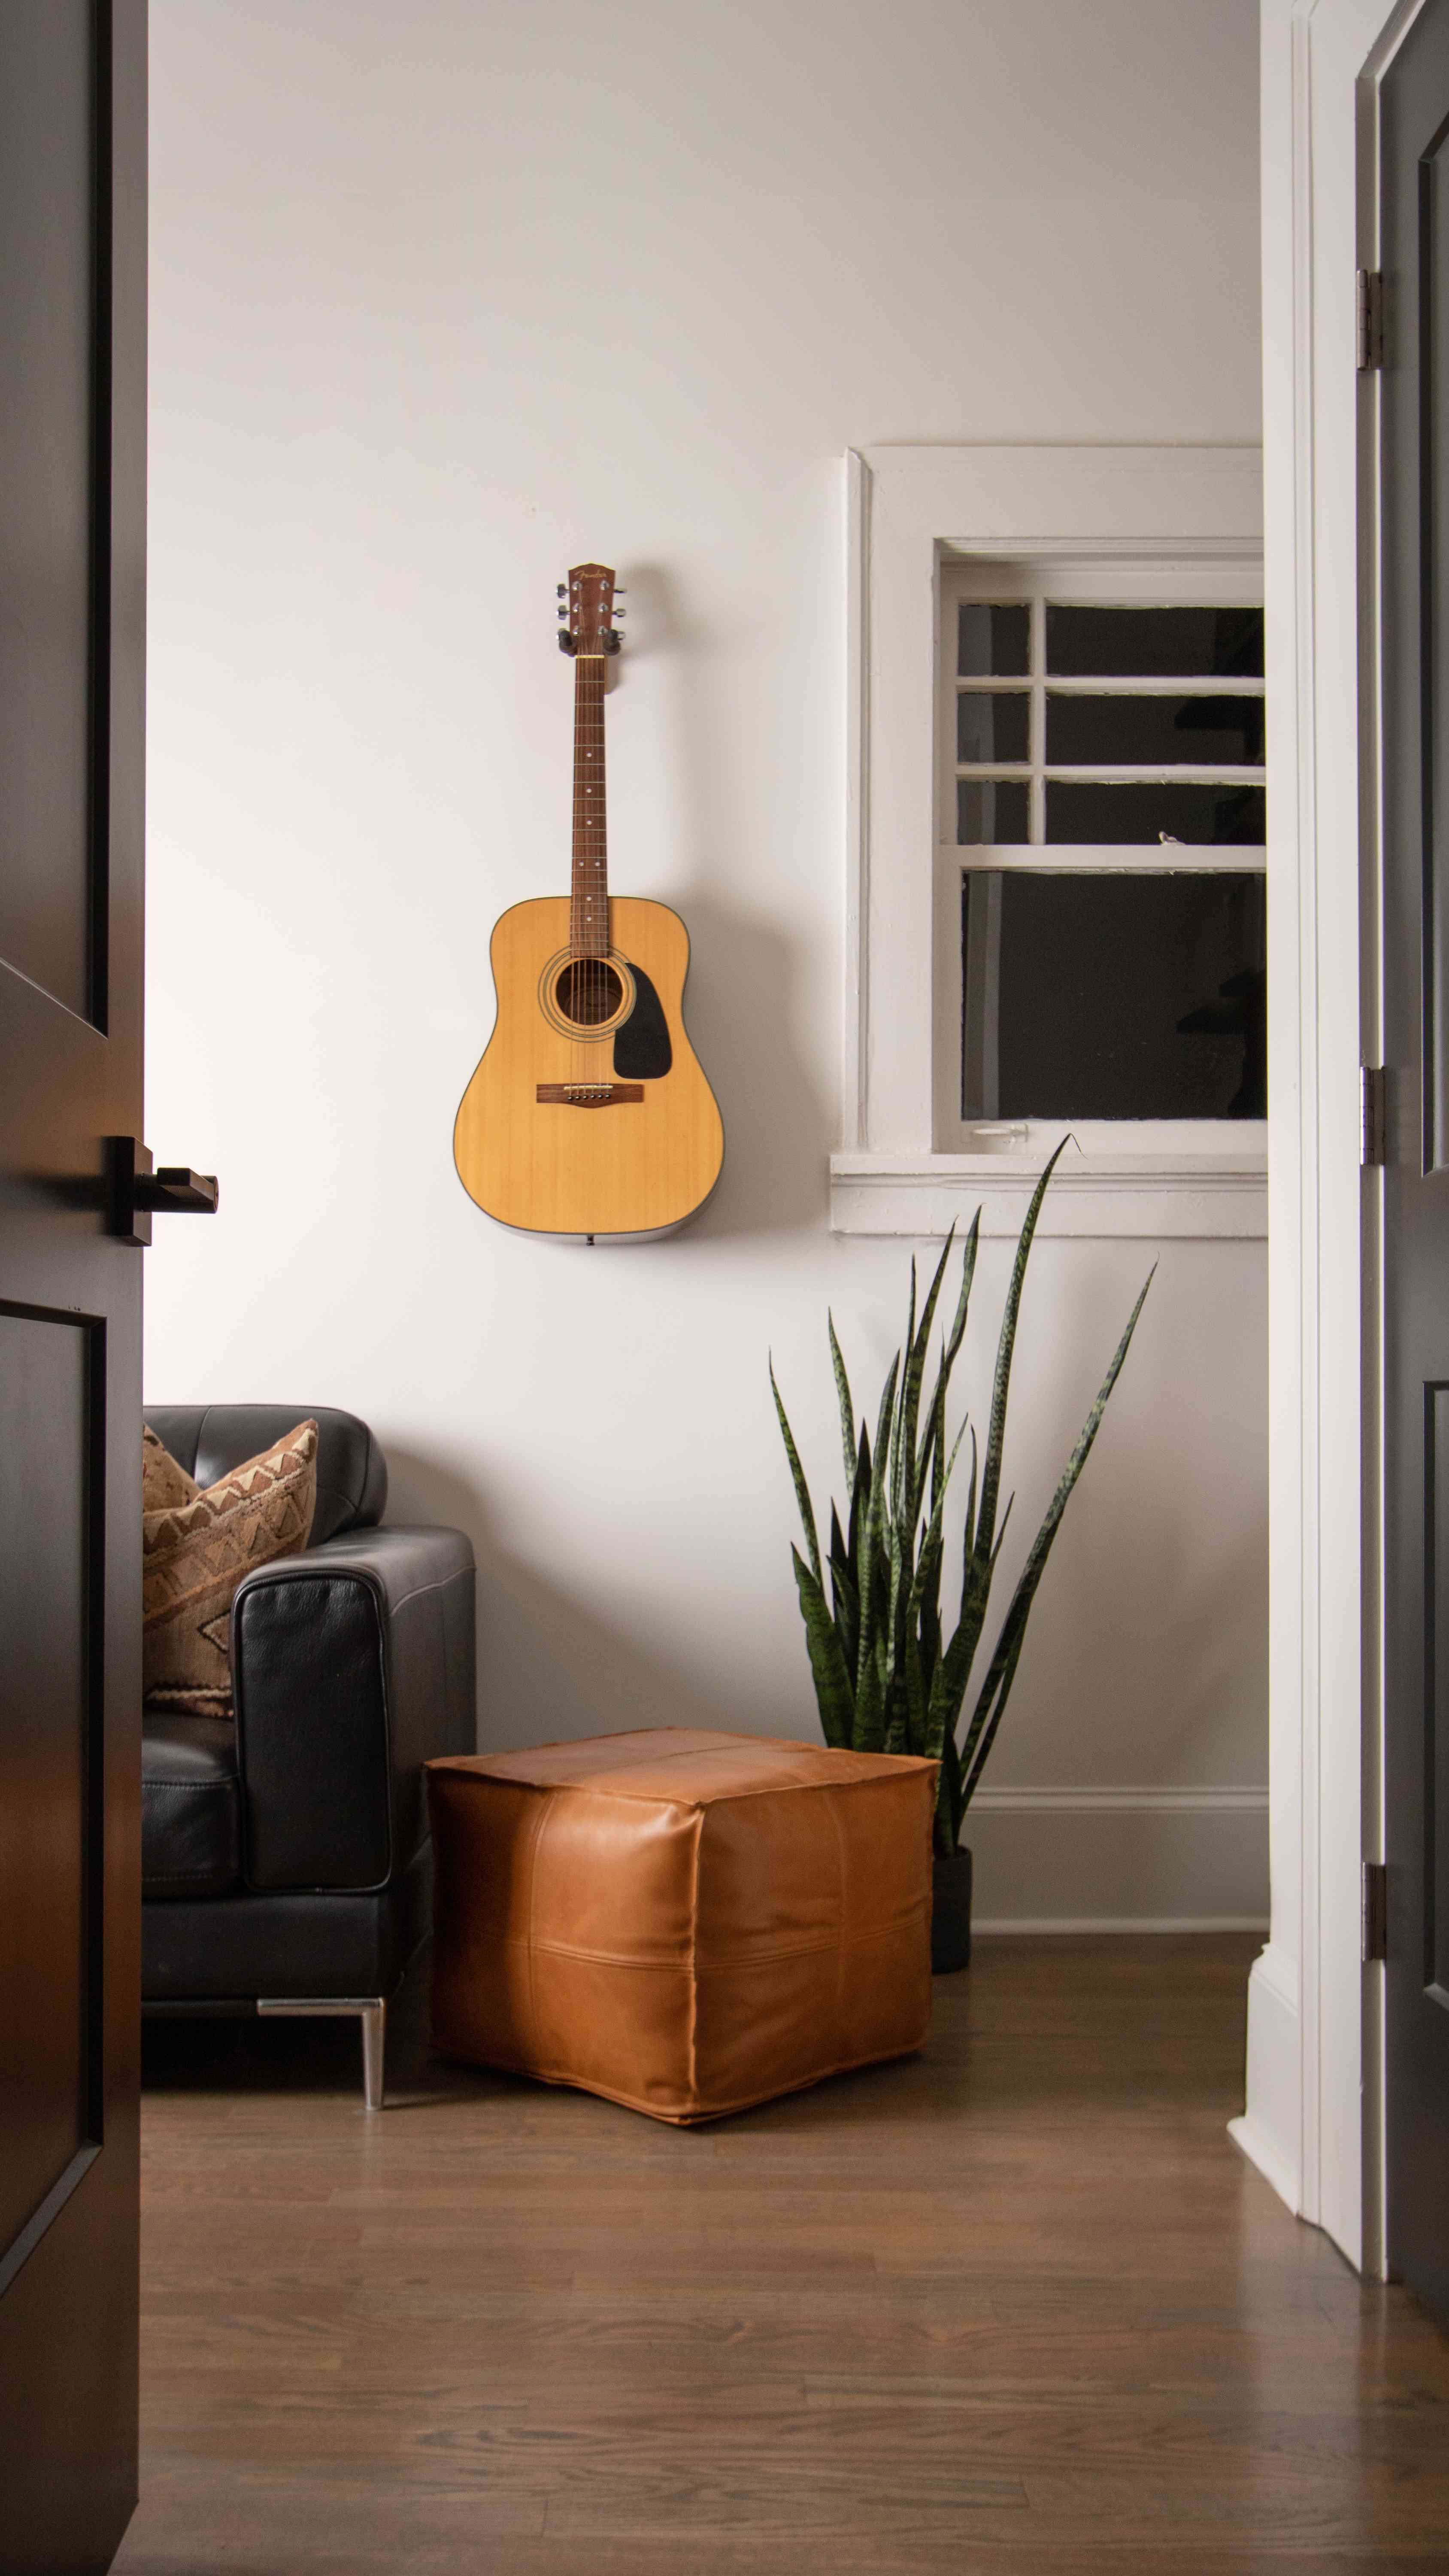 Guitar hanging on wall in living space.